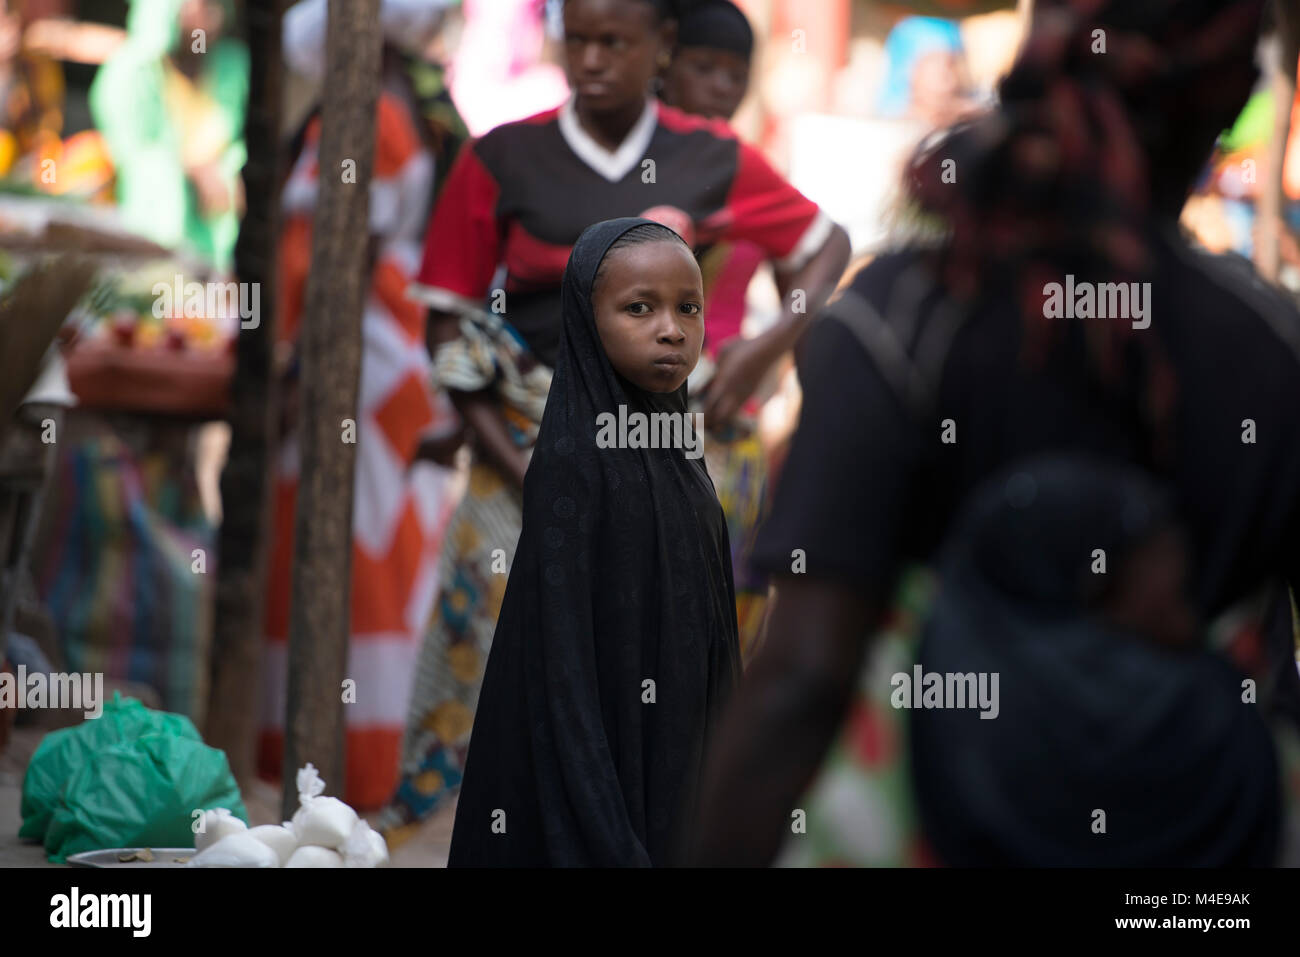 A young ethnic Jola girl at a market place in Senegal, West Africa. - Stock Image